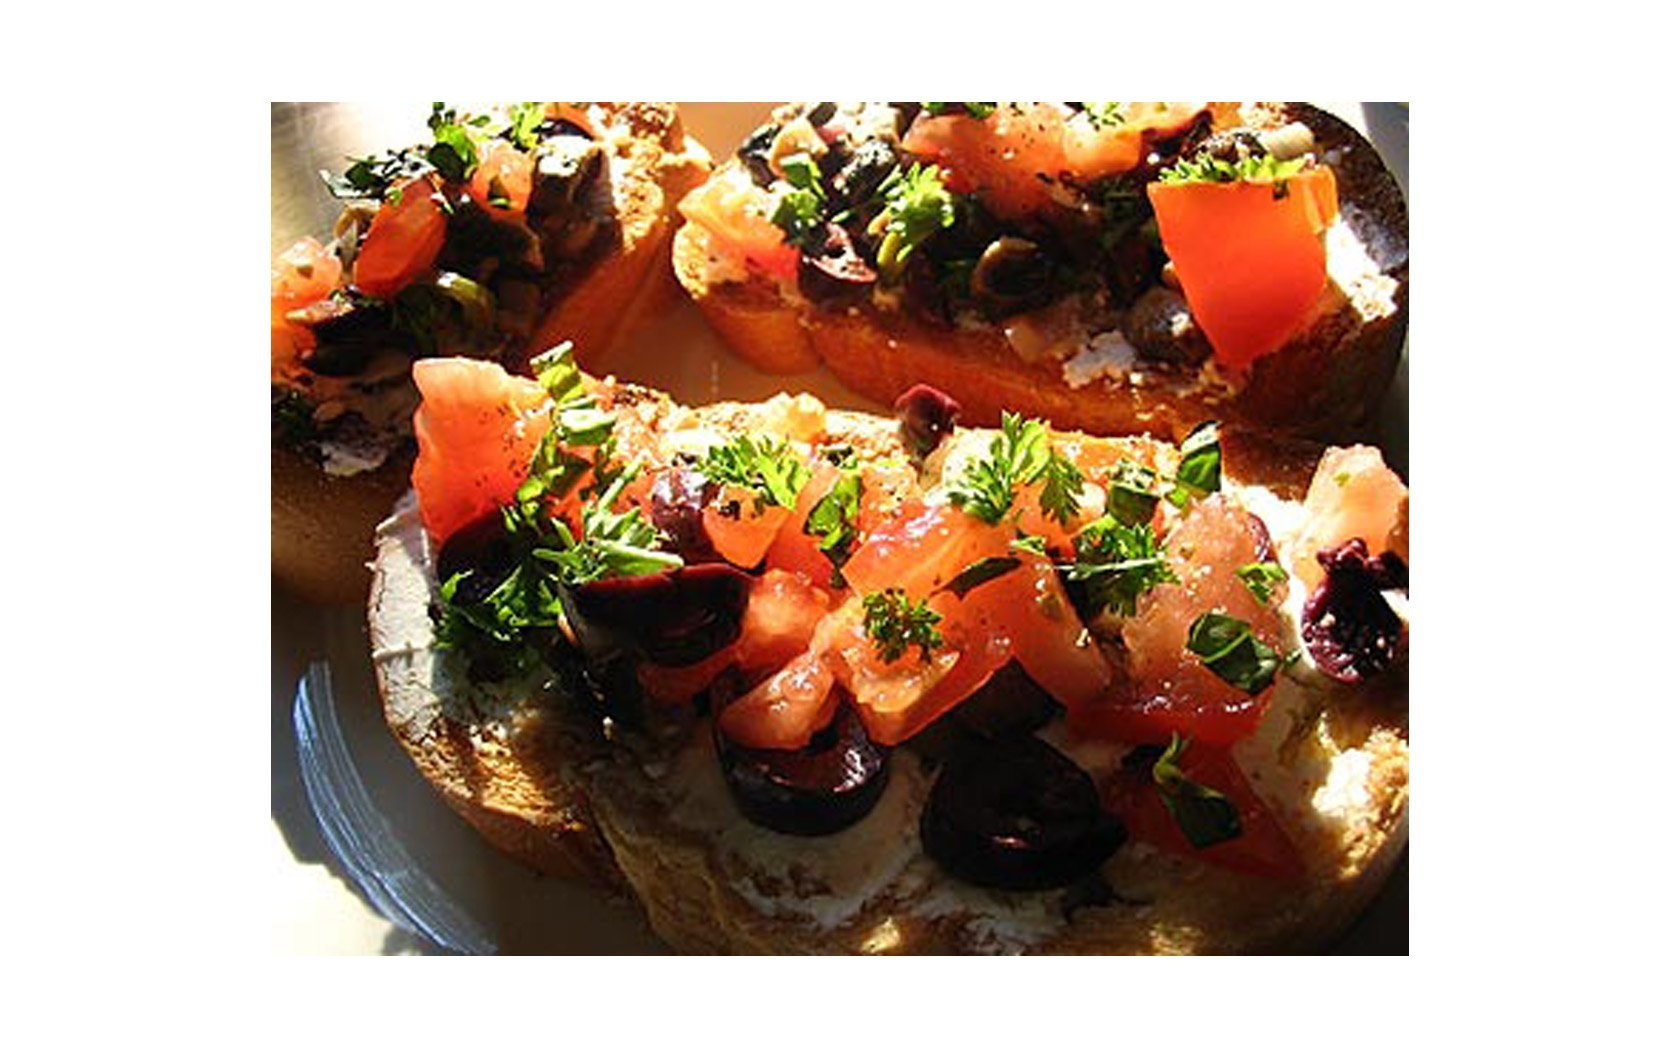 Italian Bruschetta Recipes –  Delicious Snacks and Light Meals on Summer Days